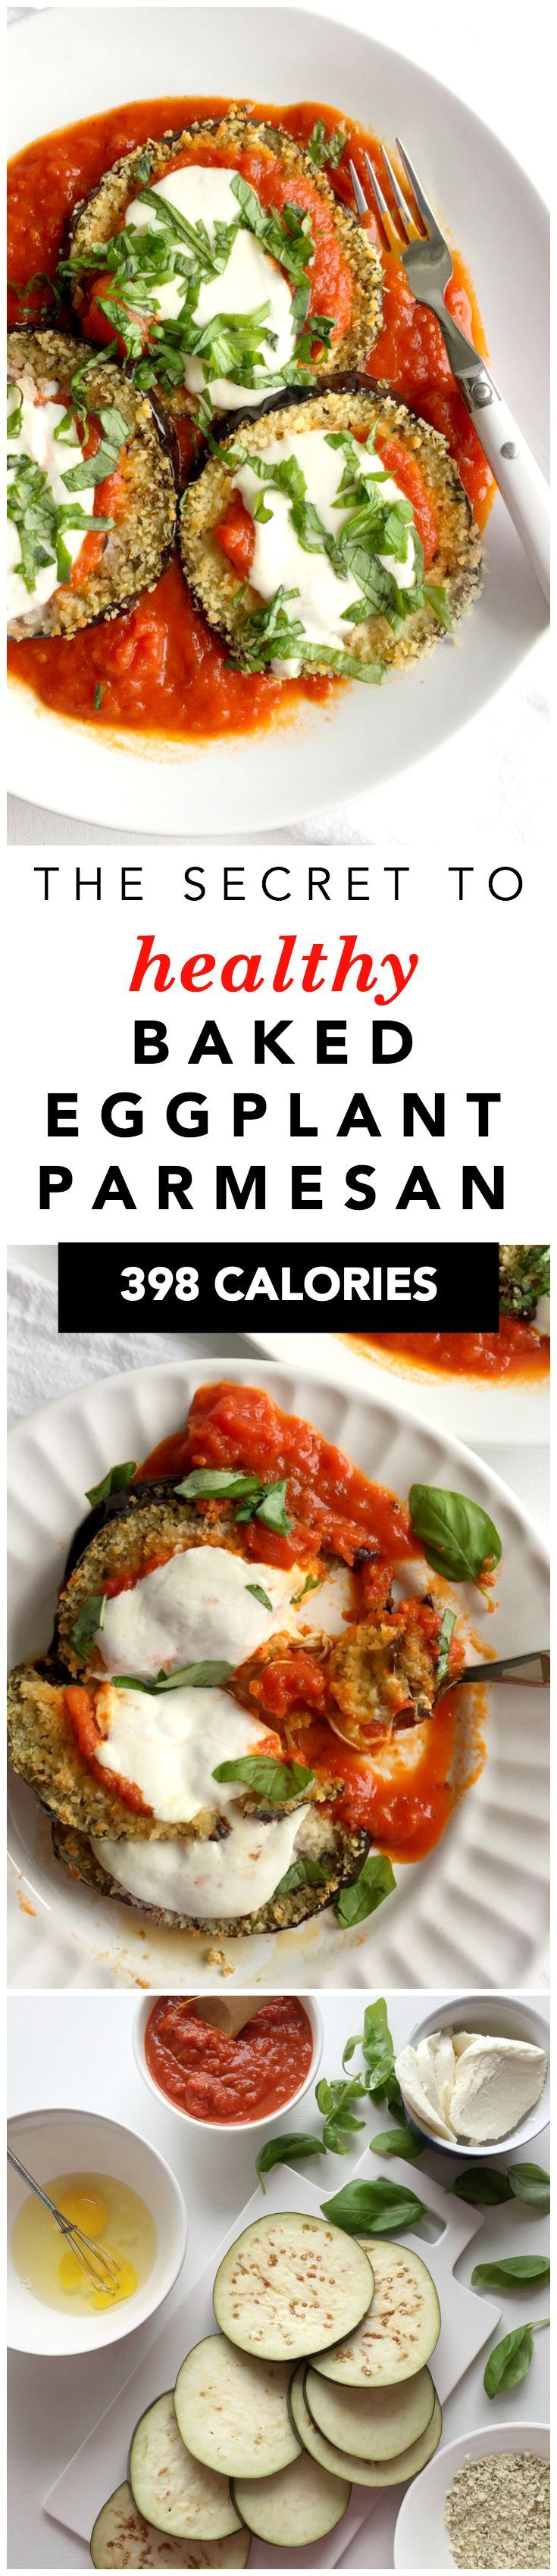 Baked Eggplant Parmesan Healthy Baked Eggplant Parmesan Recipe! The secrets on how to make healthy baked eggplant parmesan recipe with panko bread crumbs and fresh mozzarella! 398 calories per servingHealthy Baked Eggplant Parmesan Recipe! The secrets on how to make healthy baked eggplant parmesan recipe with panko bread crumbs and fresh moz...